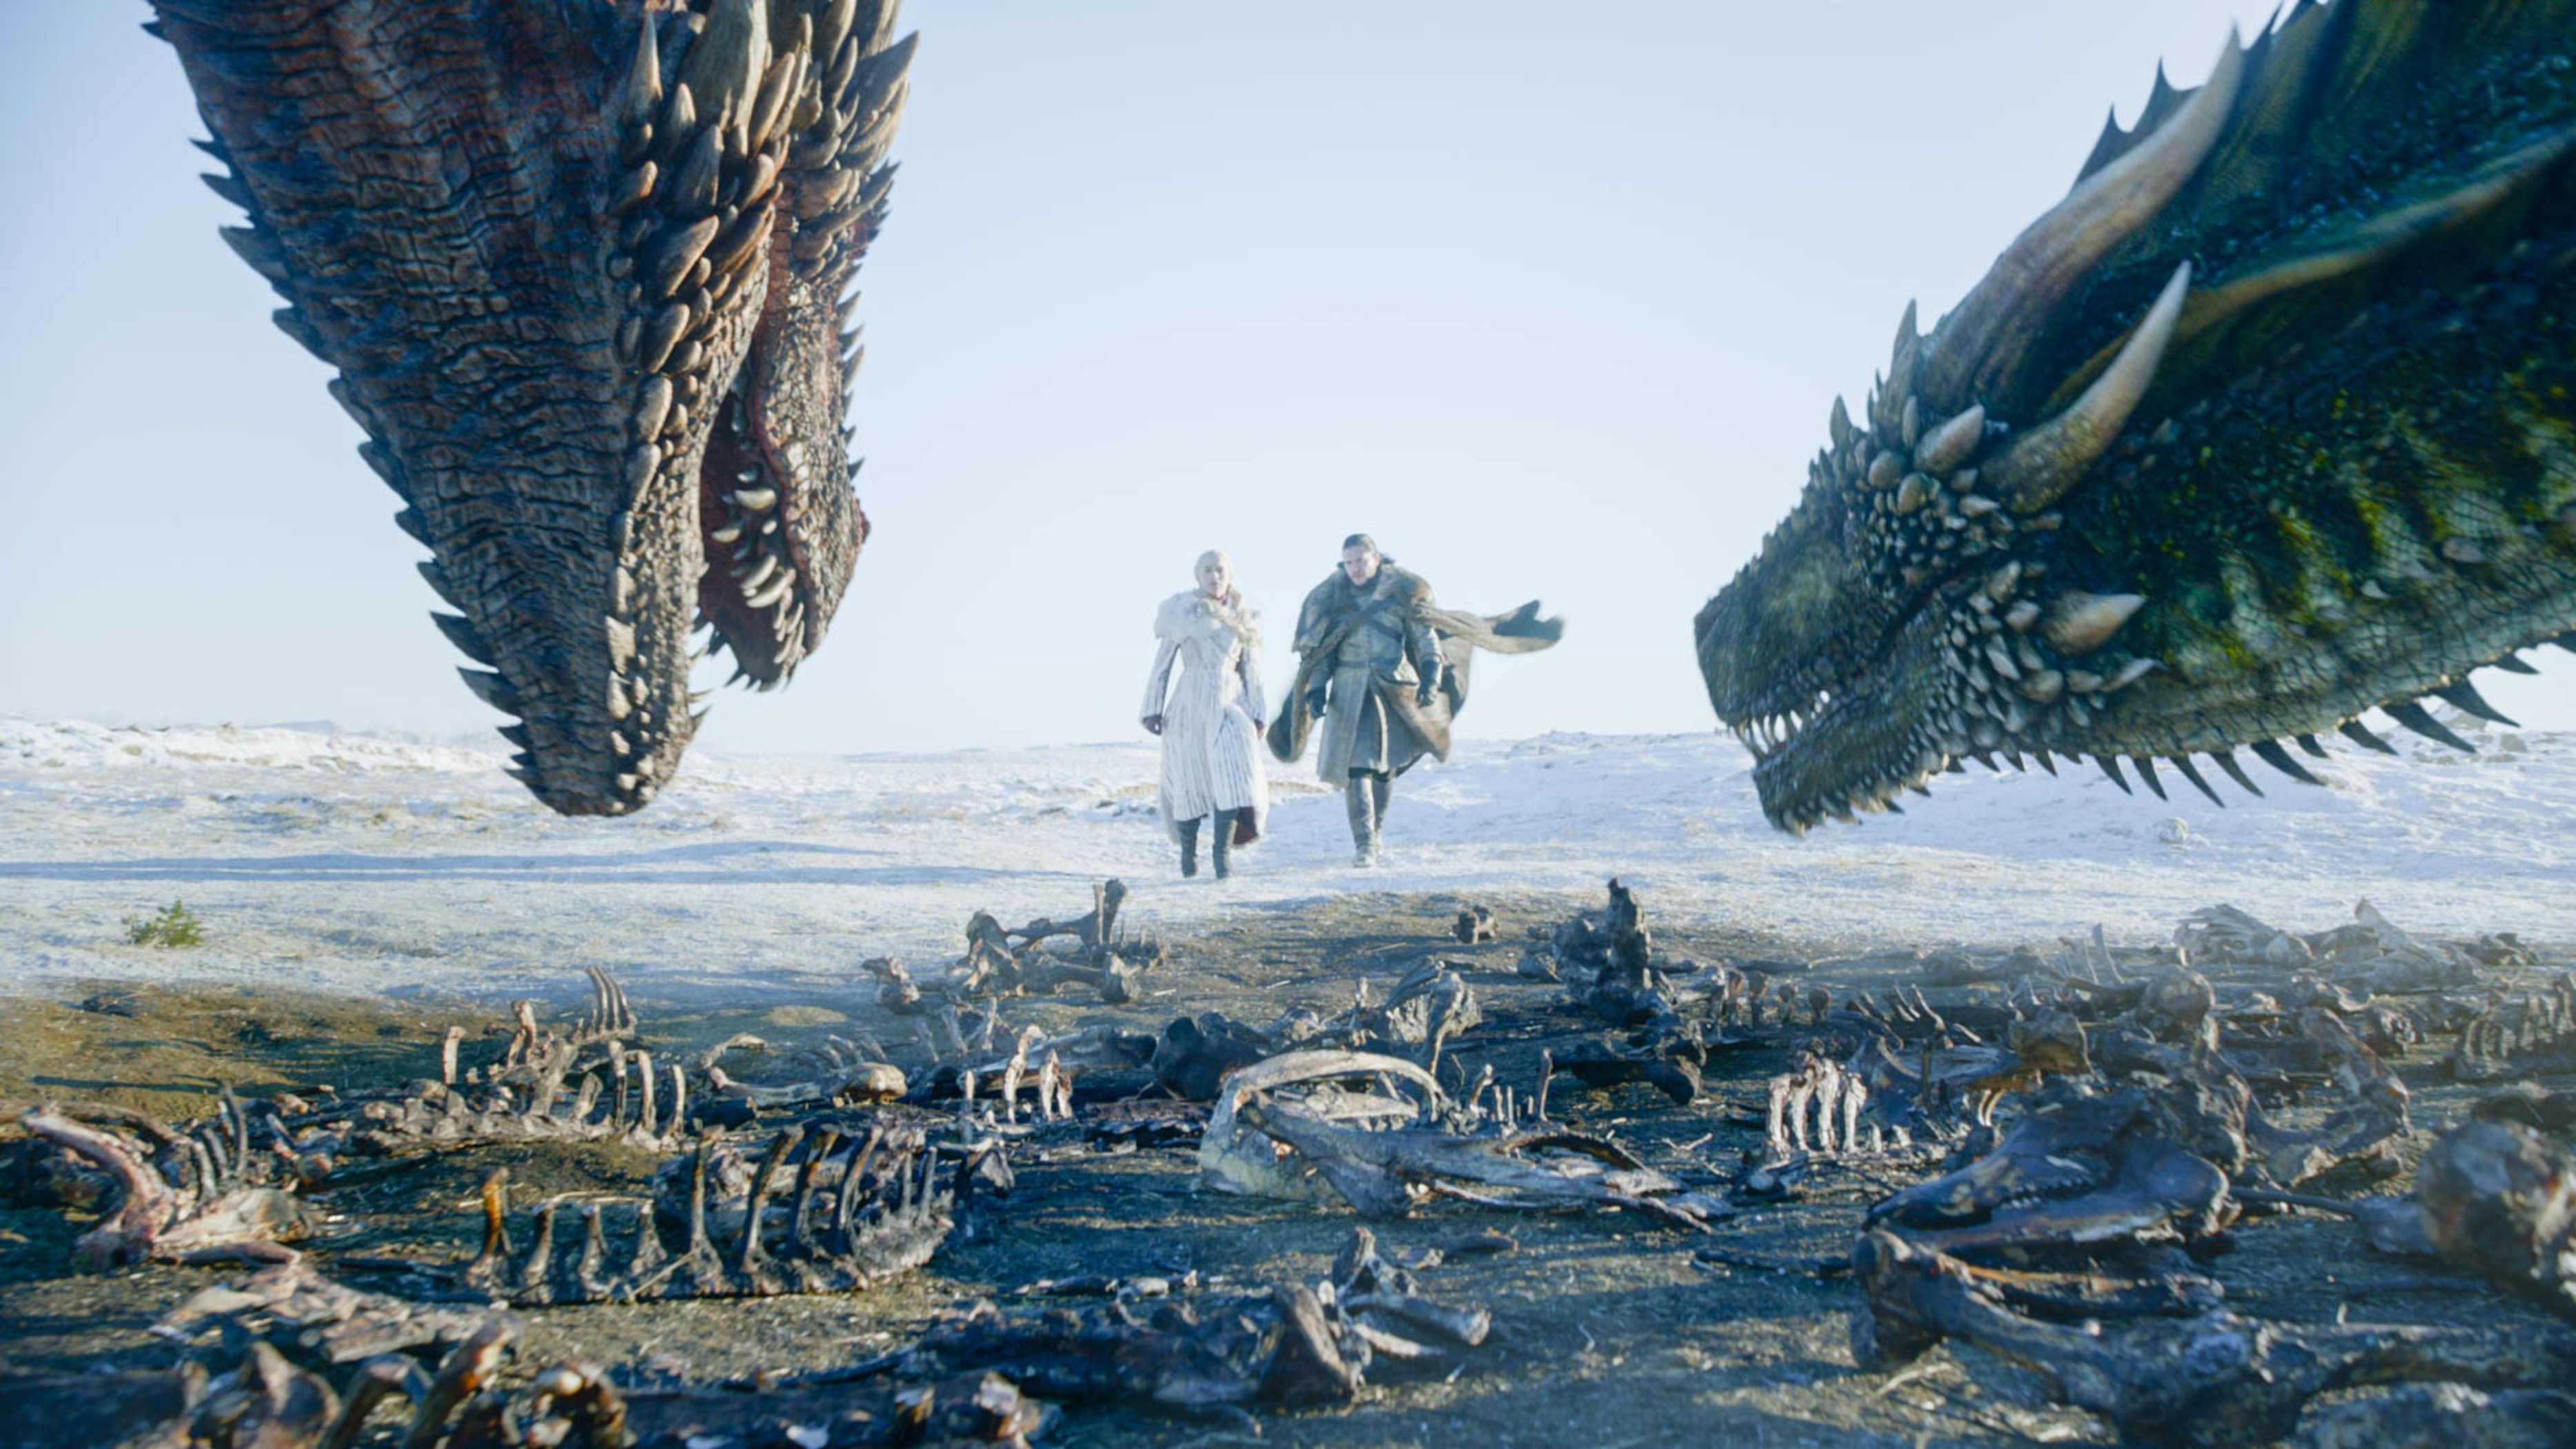 Fans hated 'Game of Thrones' this season. It just earned a record number of Emmy nominations. Huh? - The Washington Post